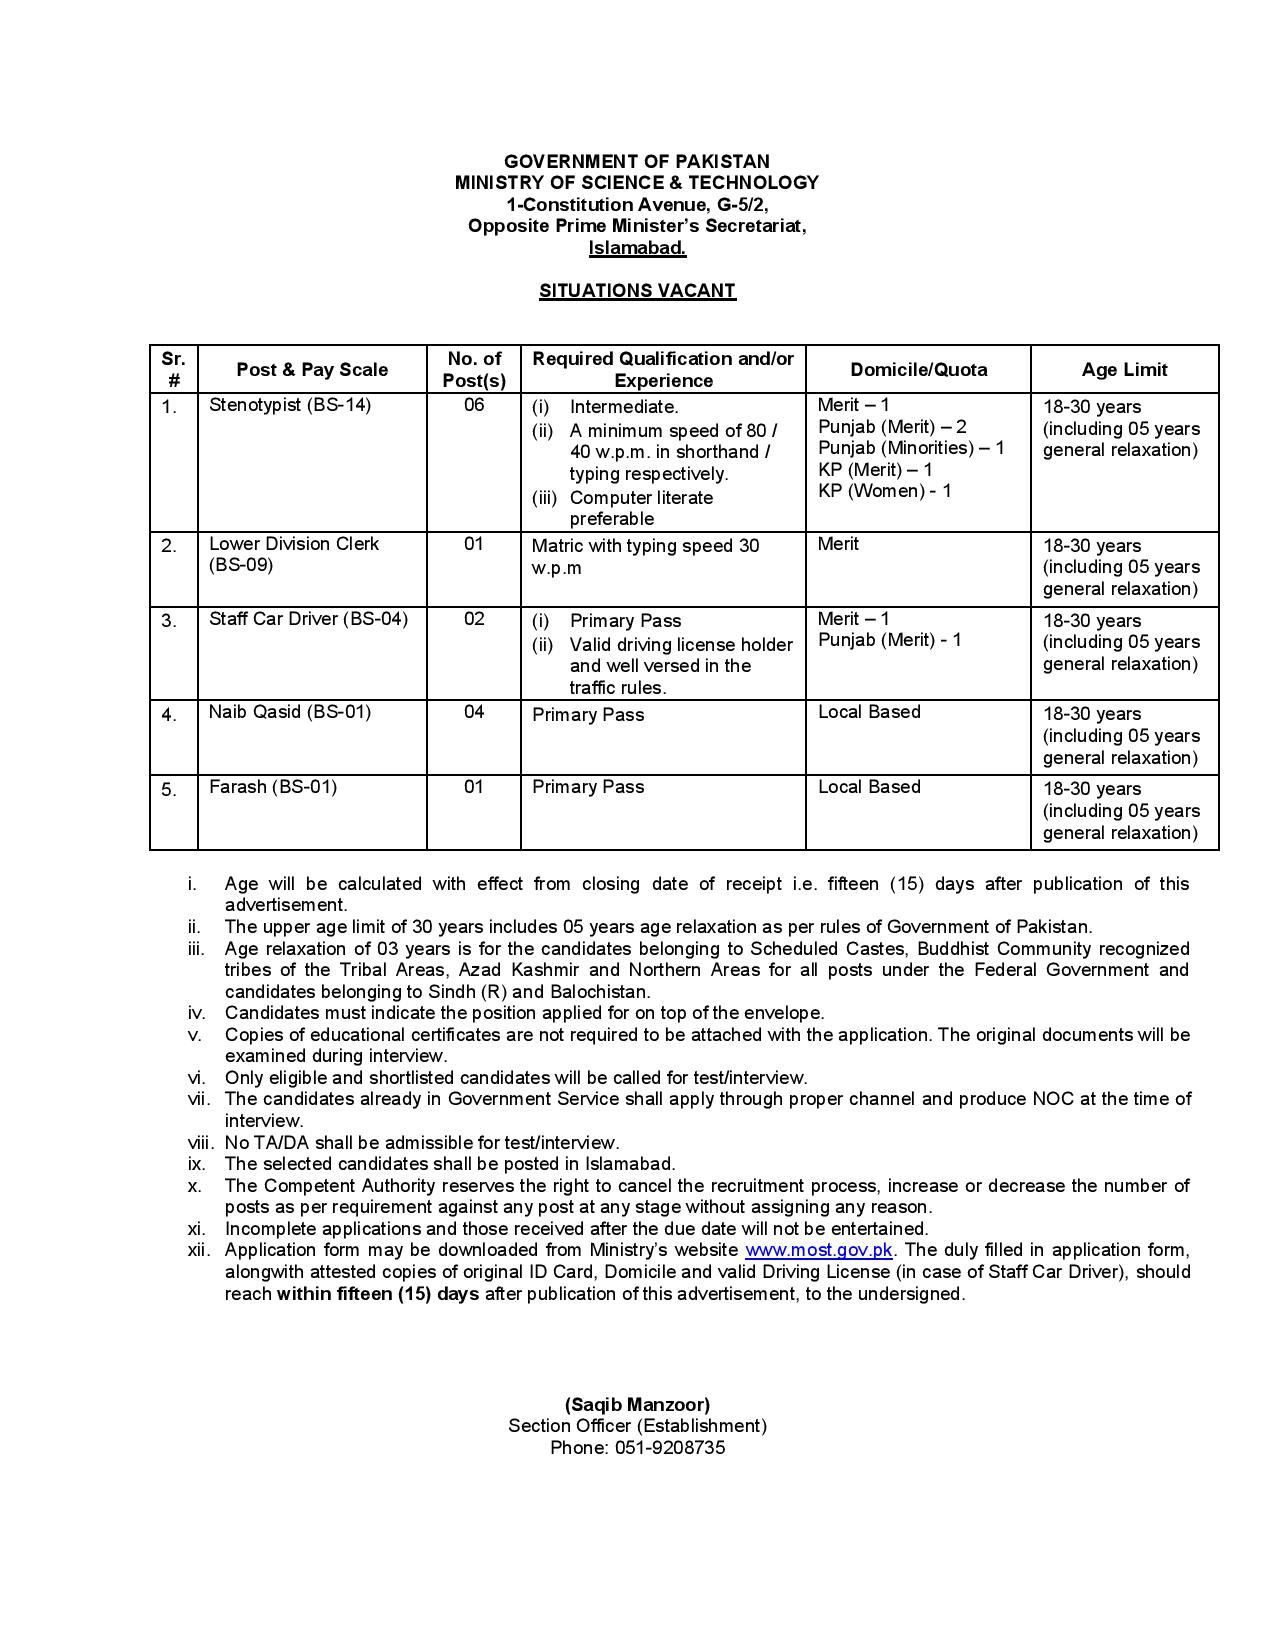 GOVERNMENT OF PAKISTAN MINISTRY OF SCIENCE & TECHNOLOGY JOBS